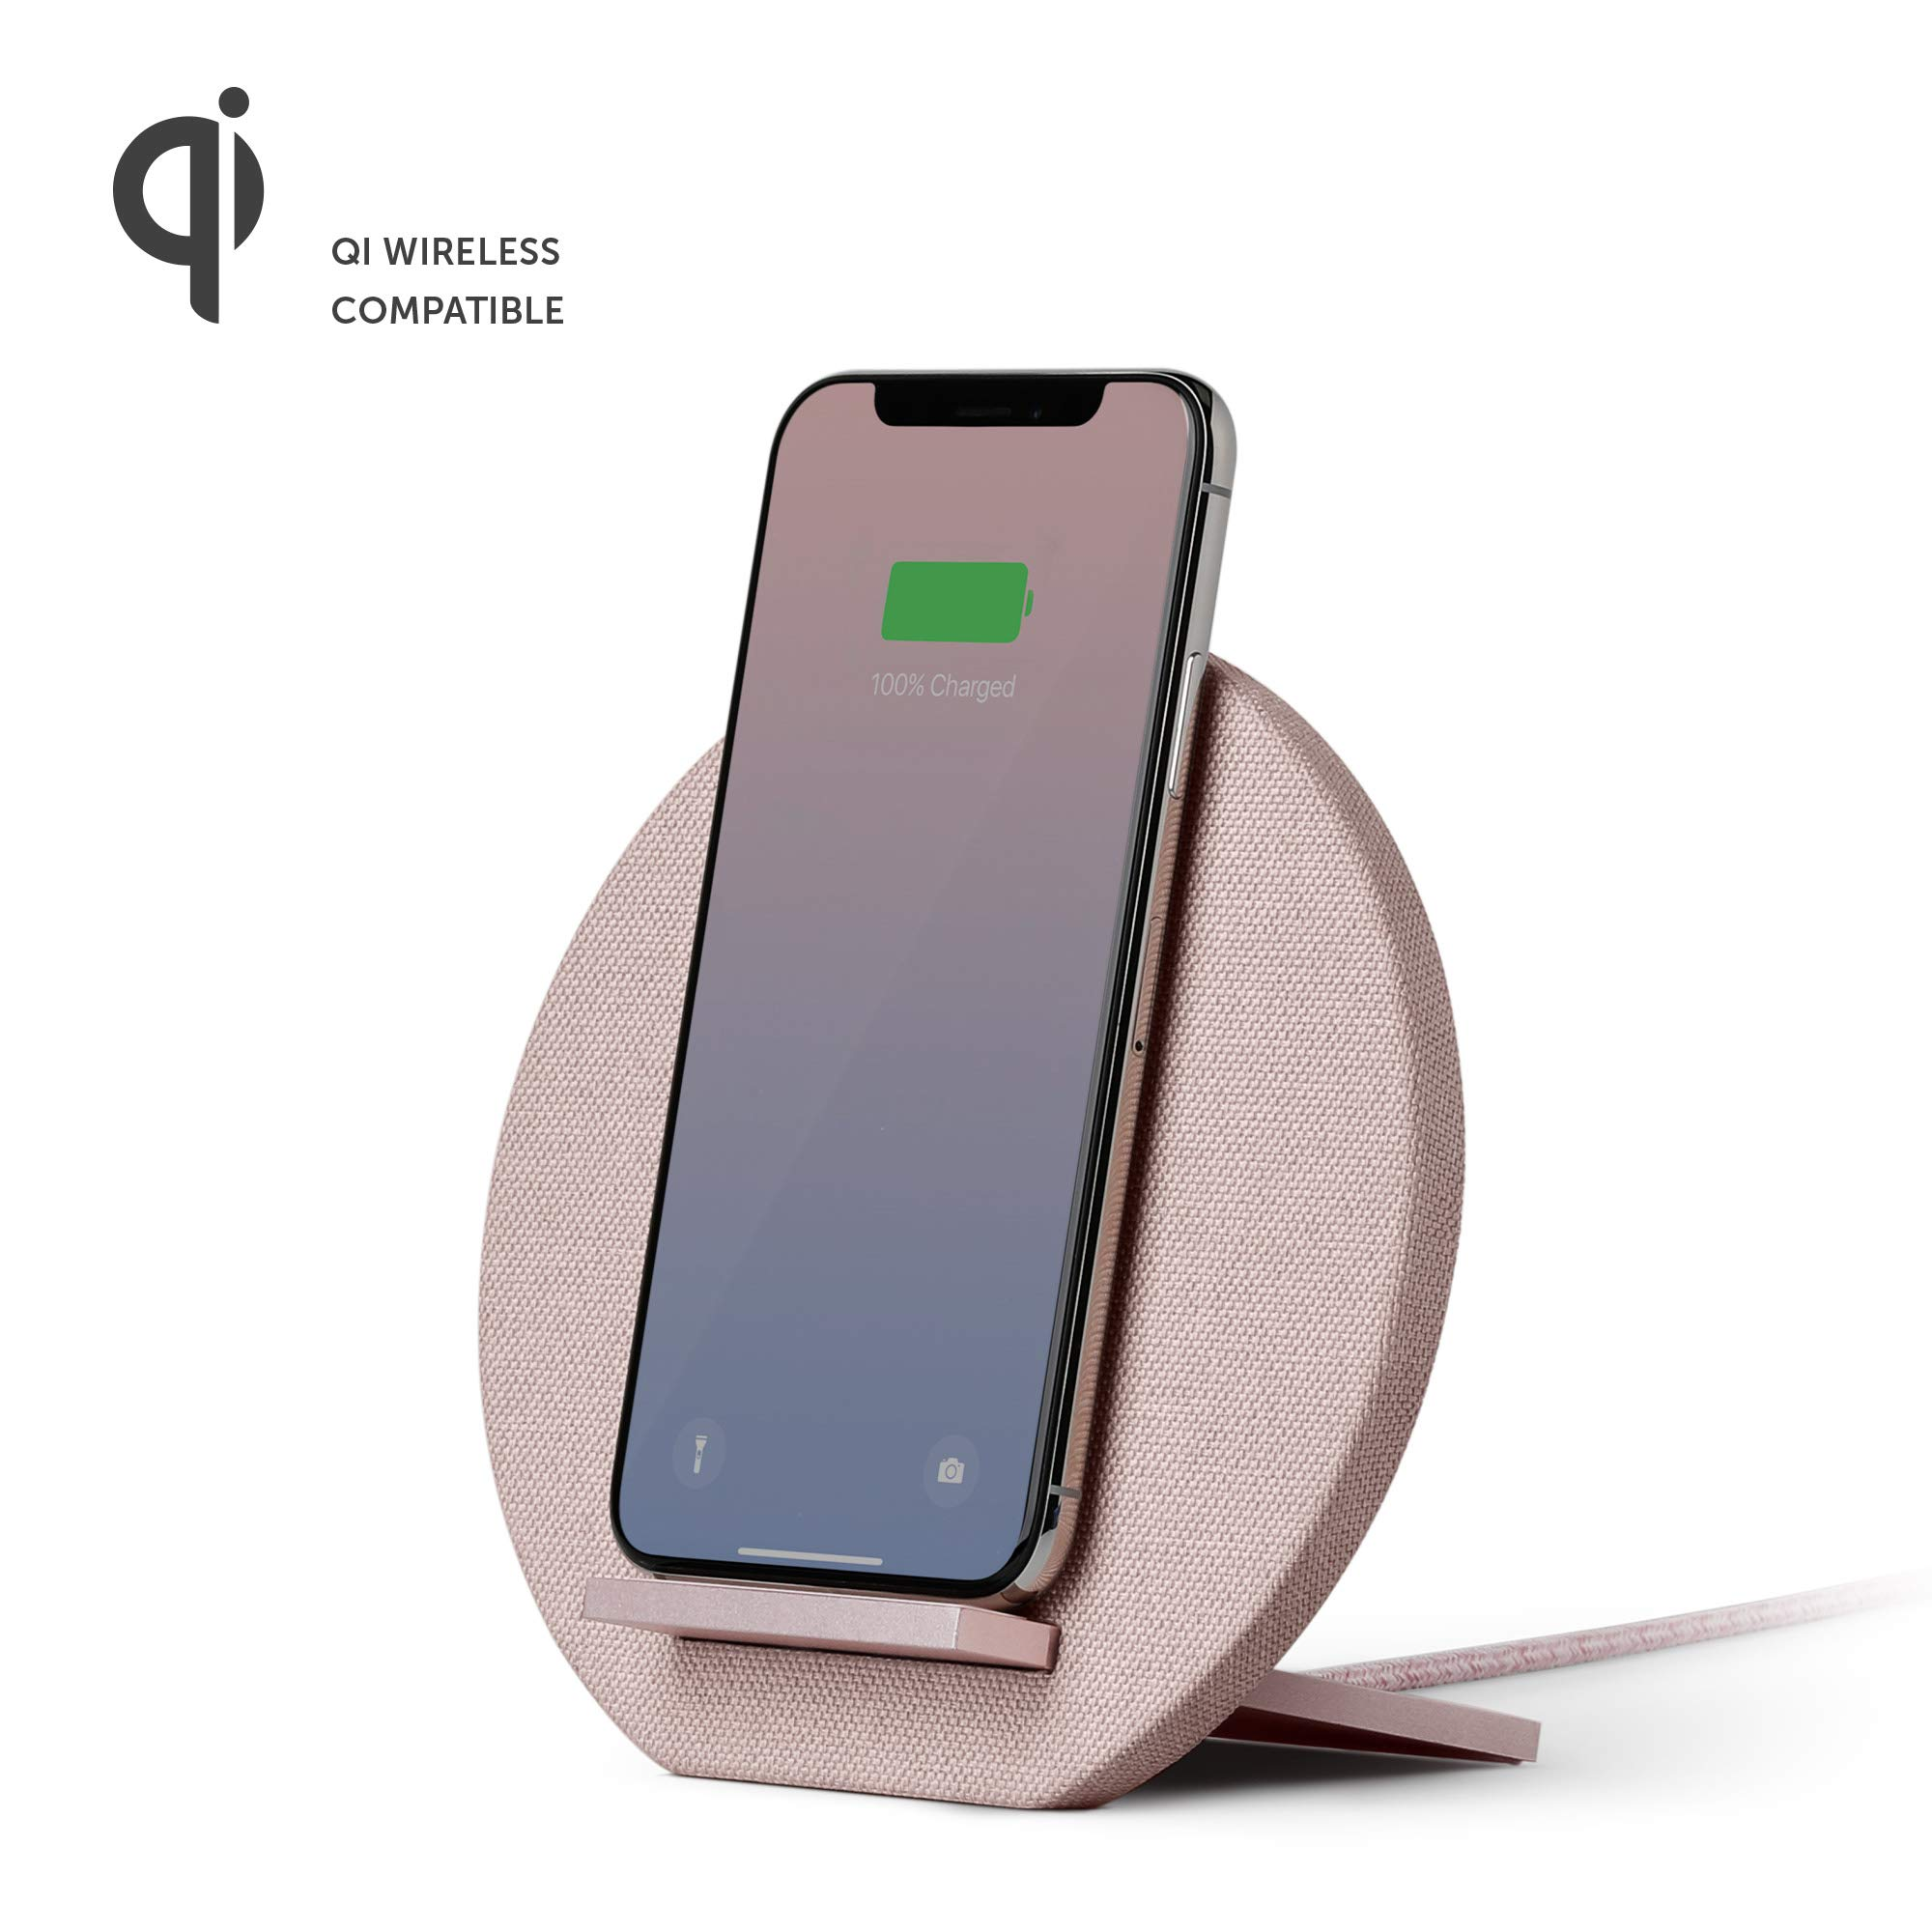 Native Union Dock Wireless Charger Stand - High Speed [Qi Certified] 10W Versatile Fast Wireless Charging Stand - Compatible with iPhone 11/11 Pro/11 Pro Max/Xs/XS Max/XR/X/8/8 Plus (Rose)